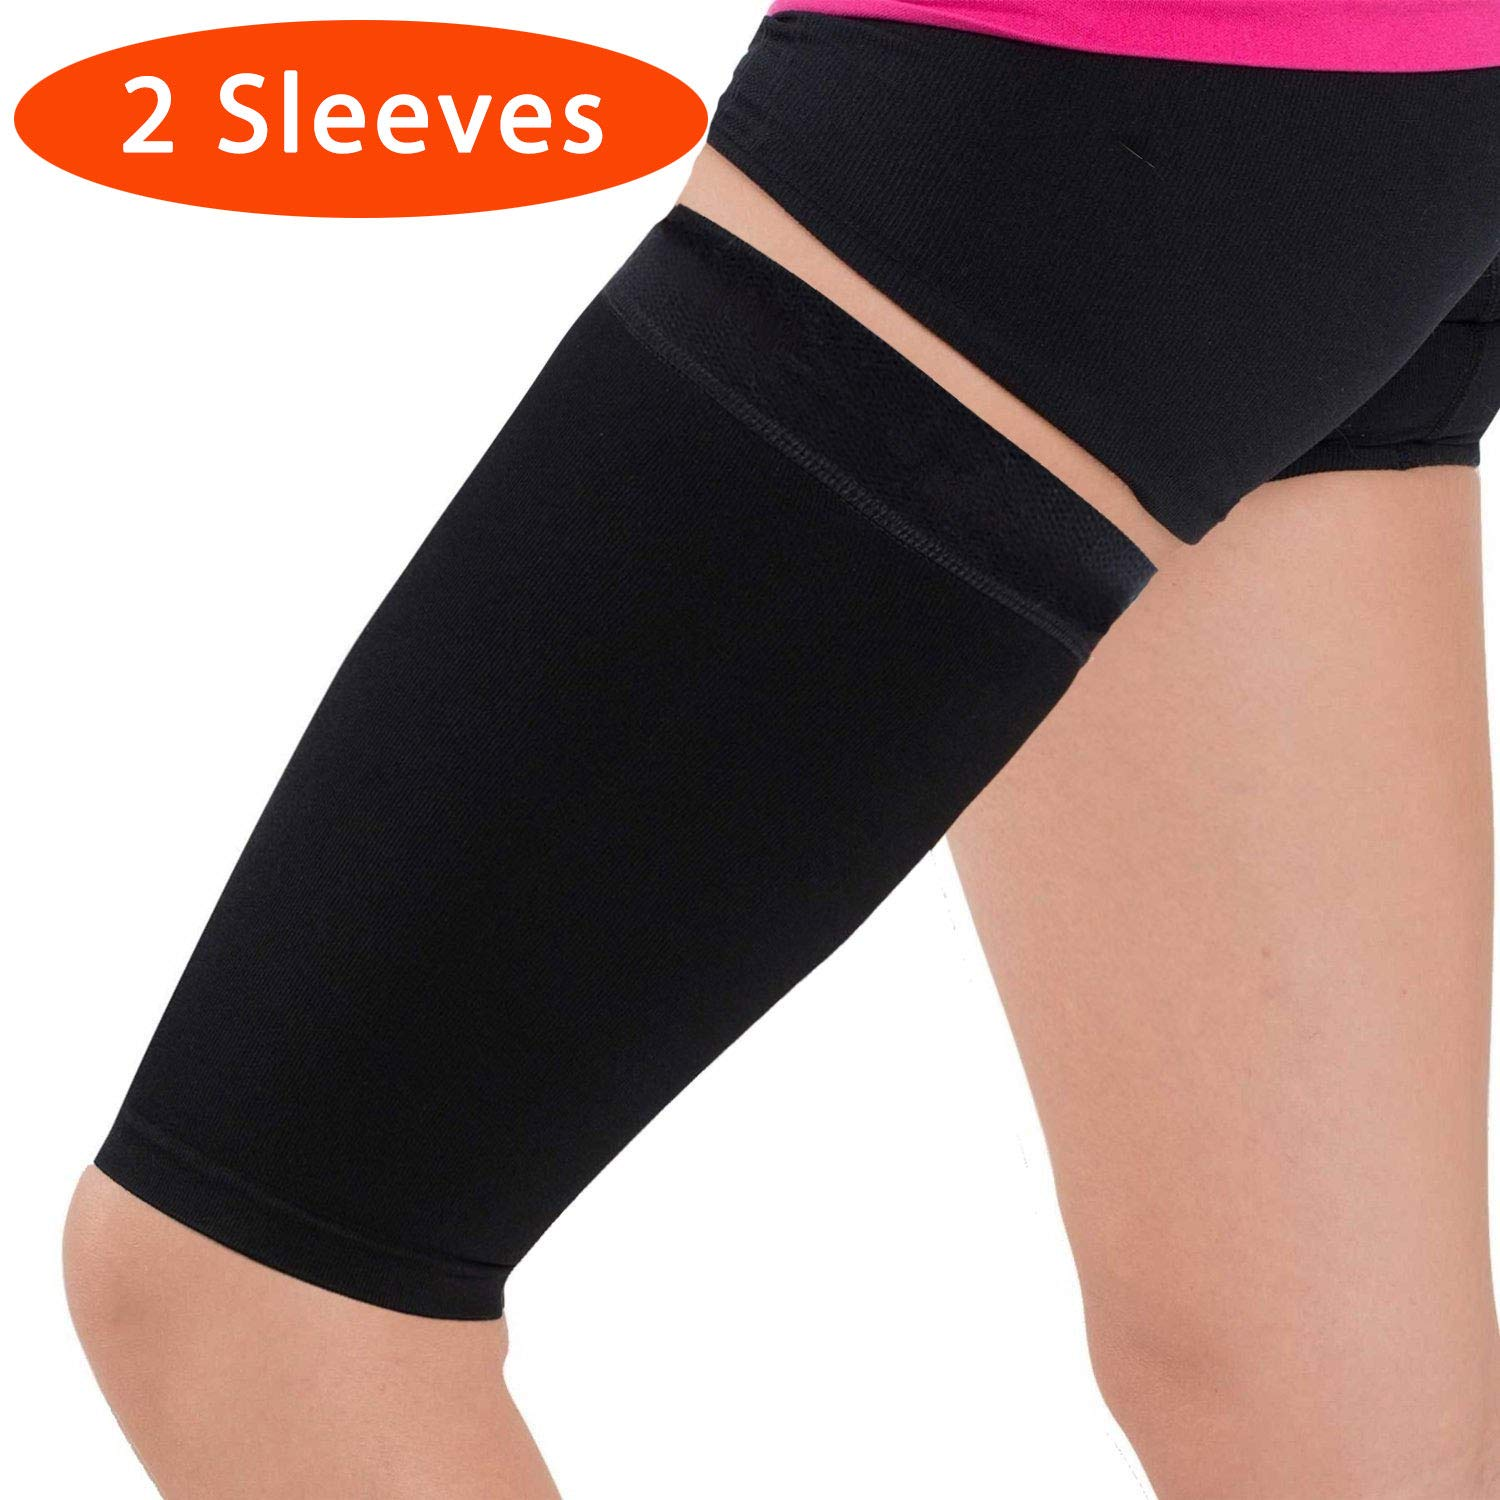 Thigh Compression Sleeve - Hamstring, Quadriceps, Groin Pull and Strains - Running, Basketball, Tennis, Soccer, Sports - Athletic Thigh Support (Single) (2 Sleeves - Black, L) by Pure Compression